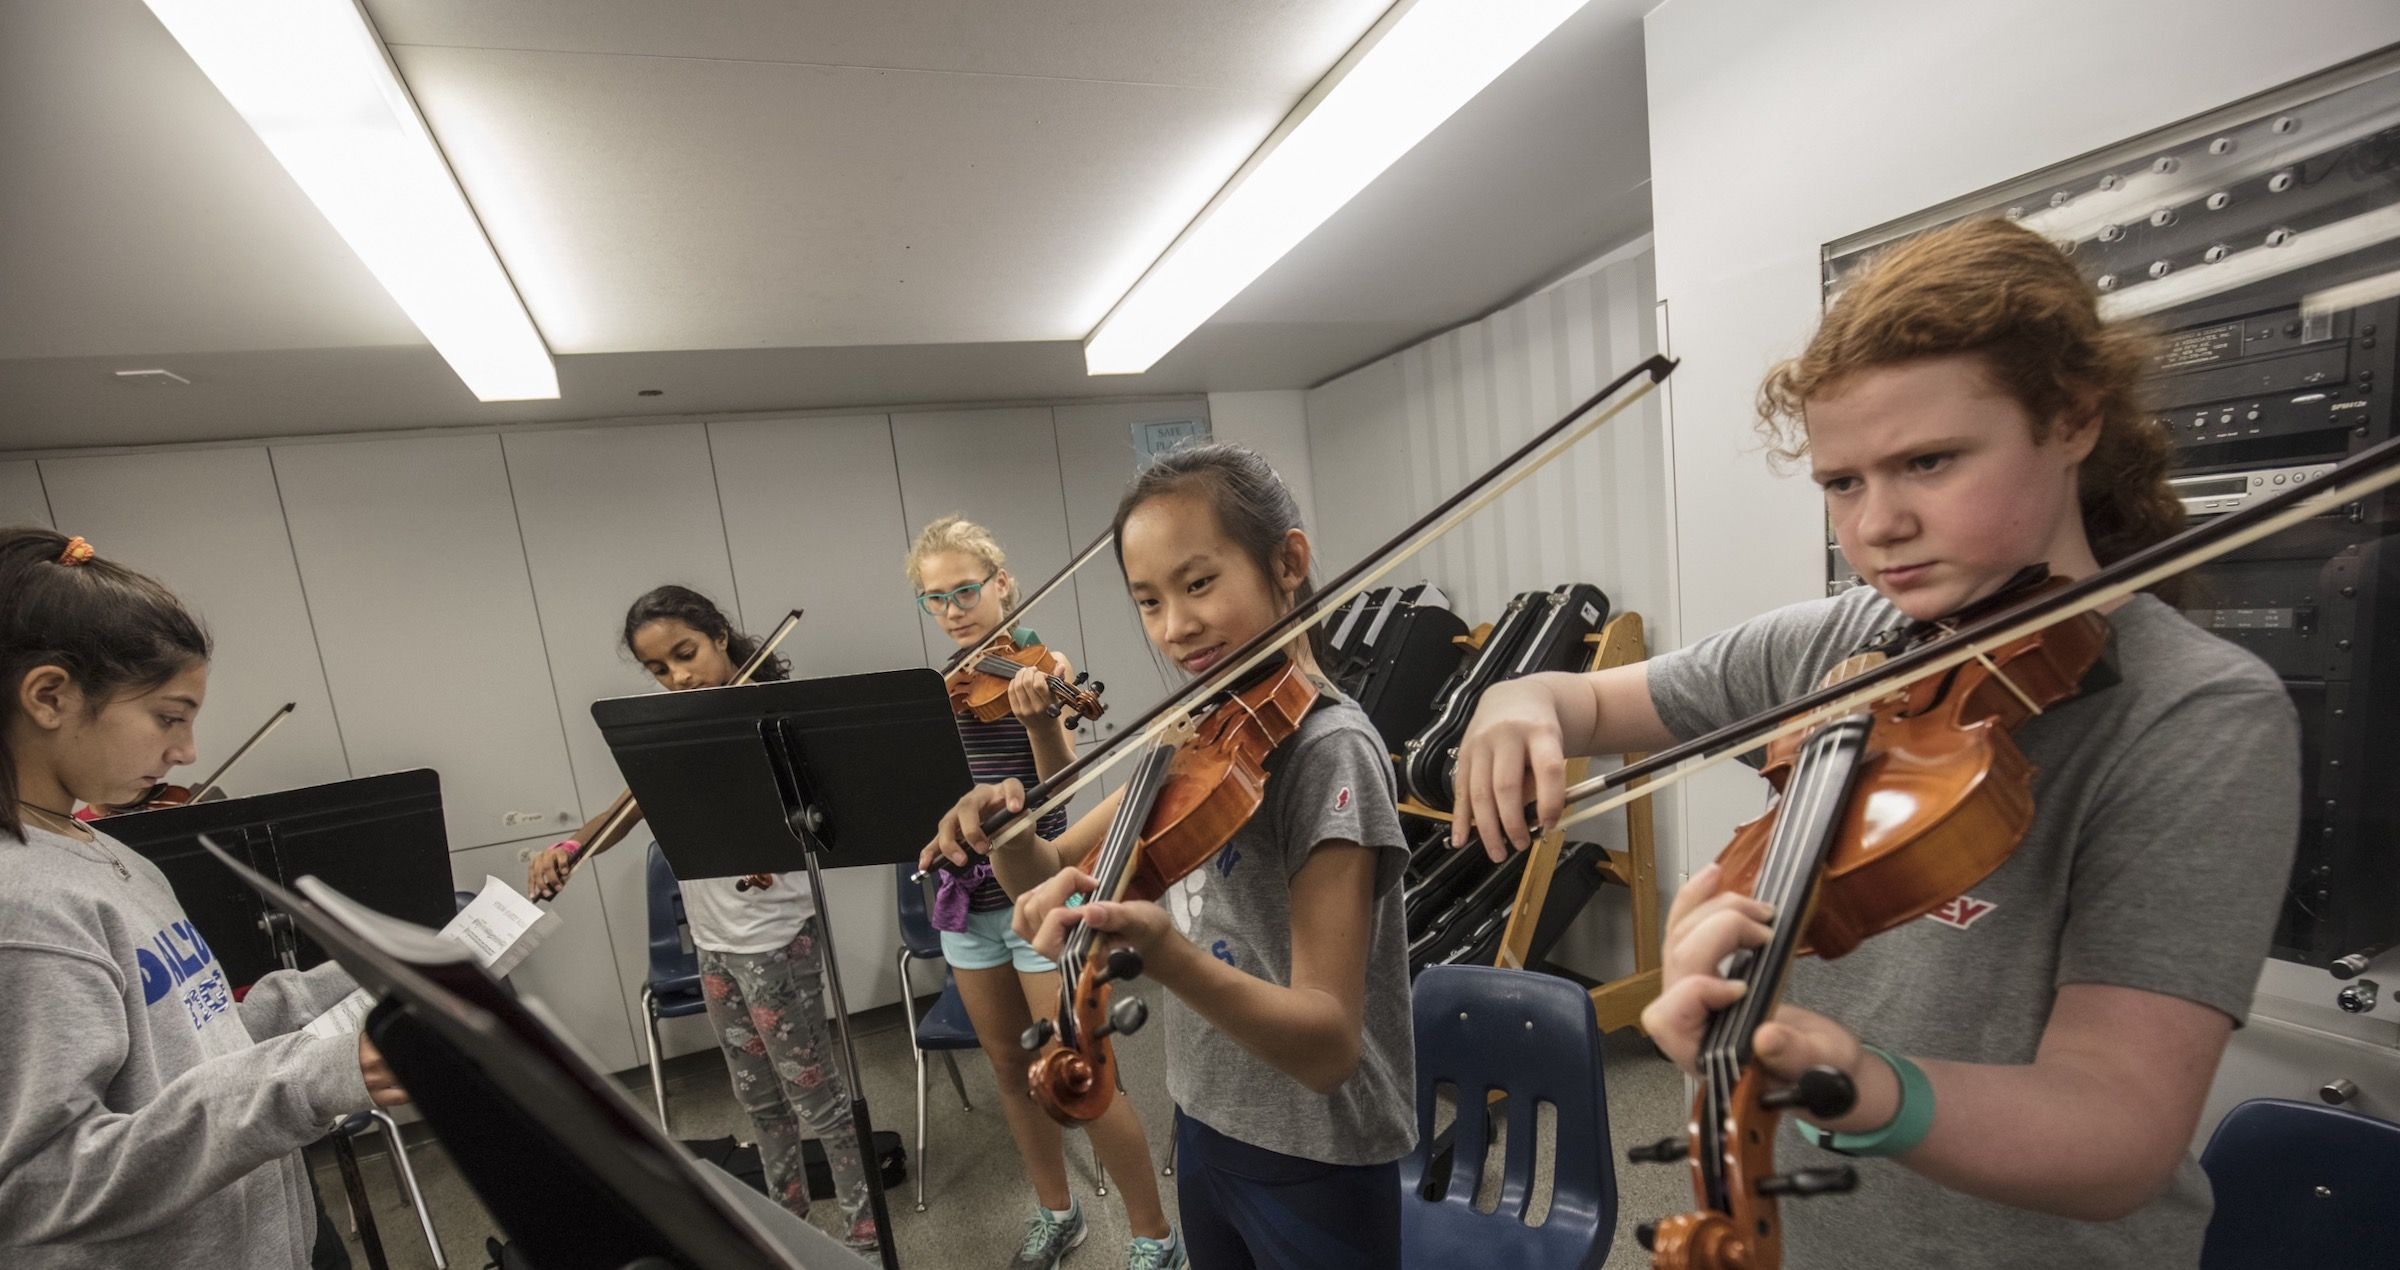 The Dalton music program offers opportunities for self-expression and communication at different levels of musical sophistication.